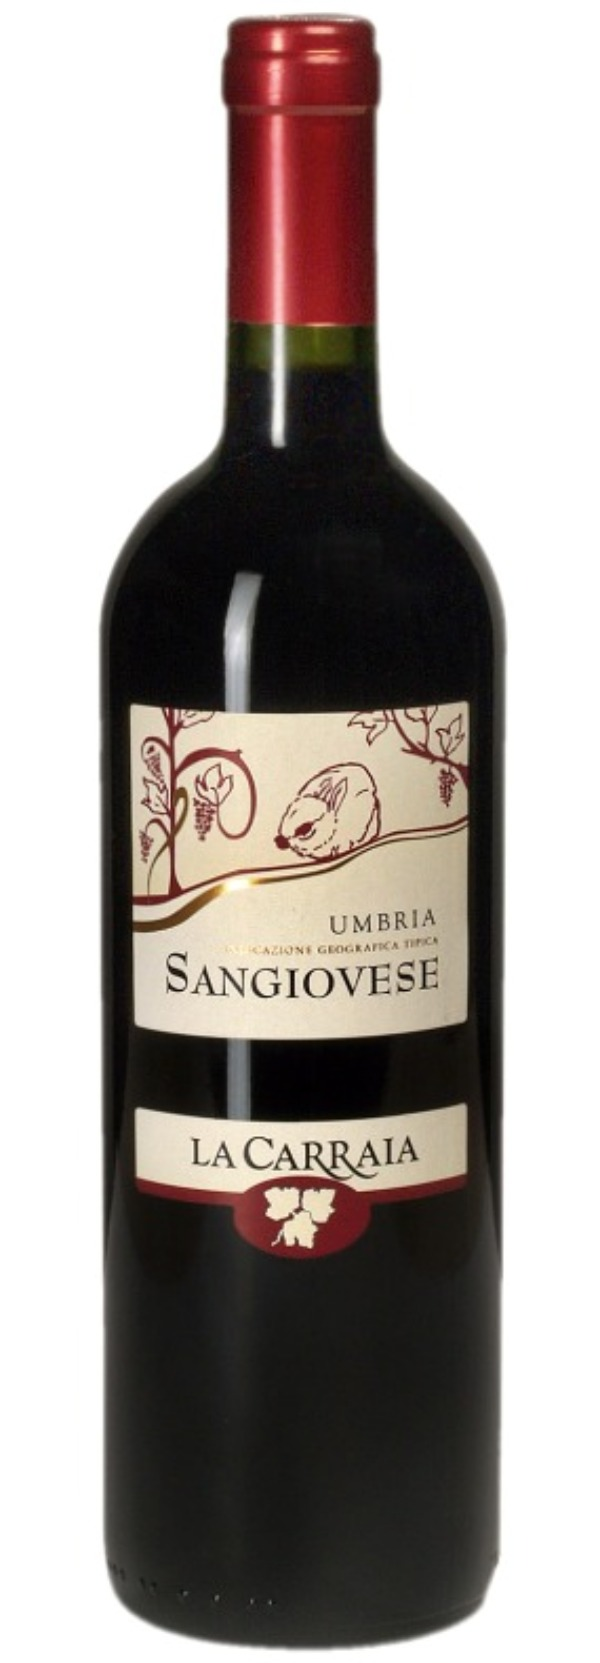 Red Wines Under $50 - La Carraia Sangiovese